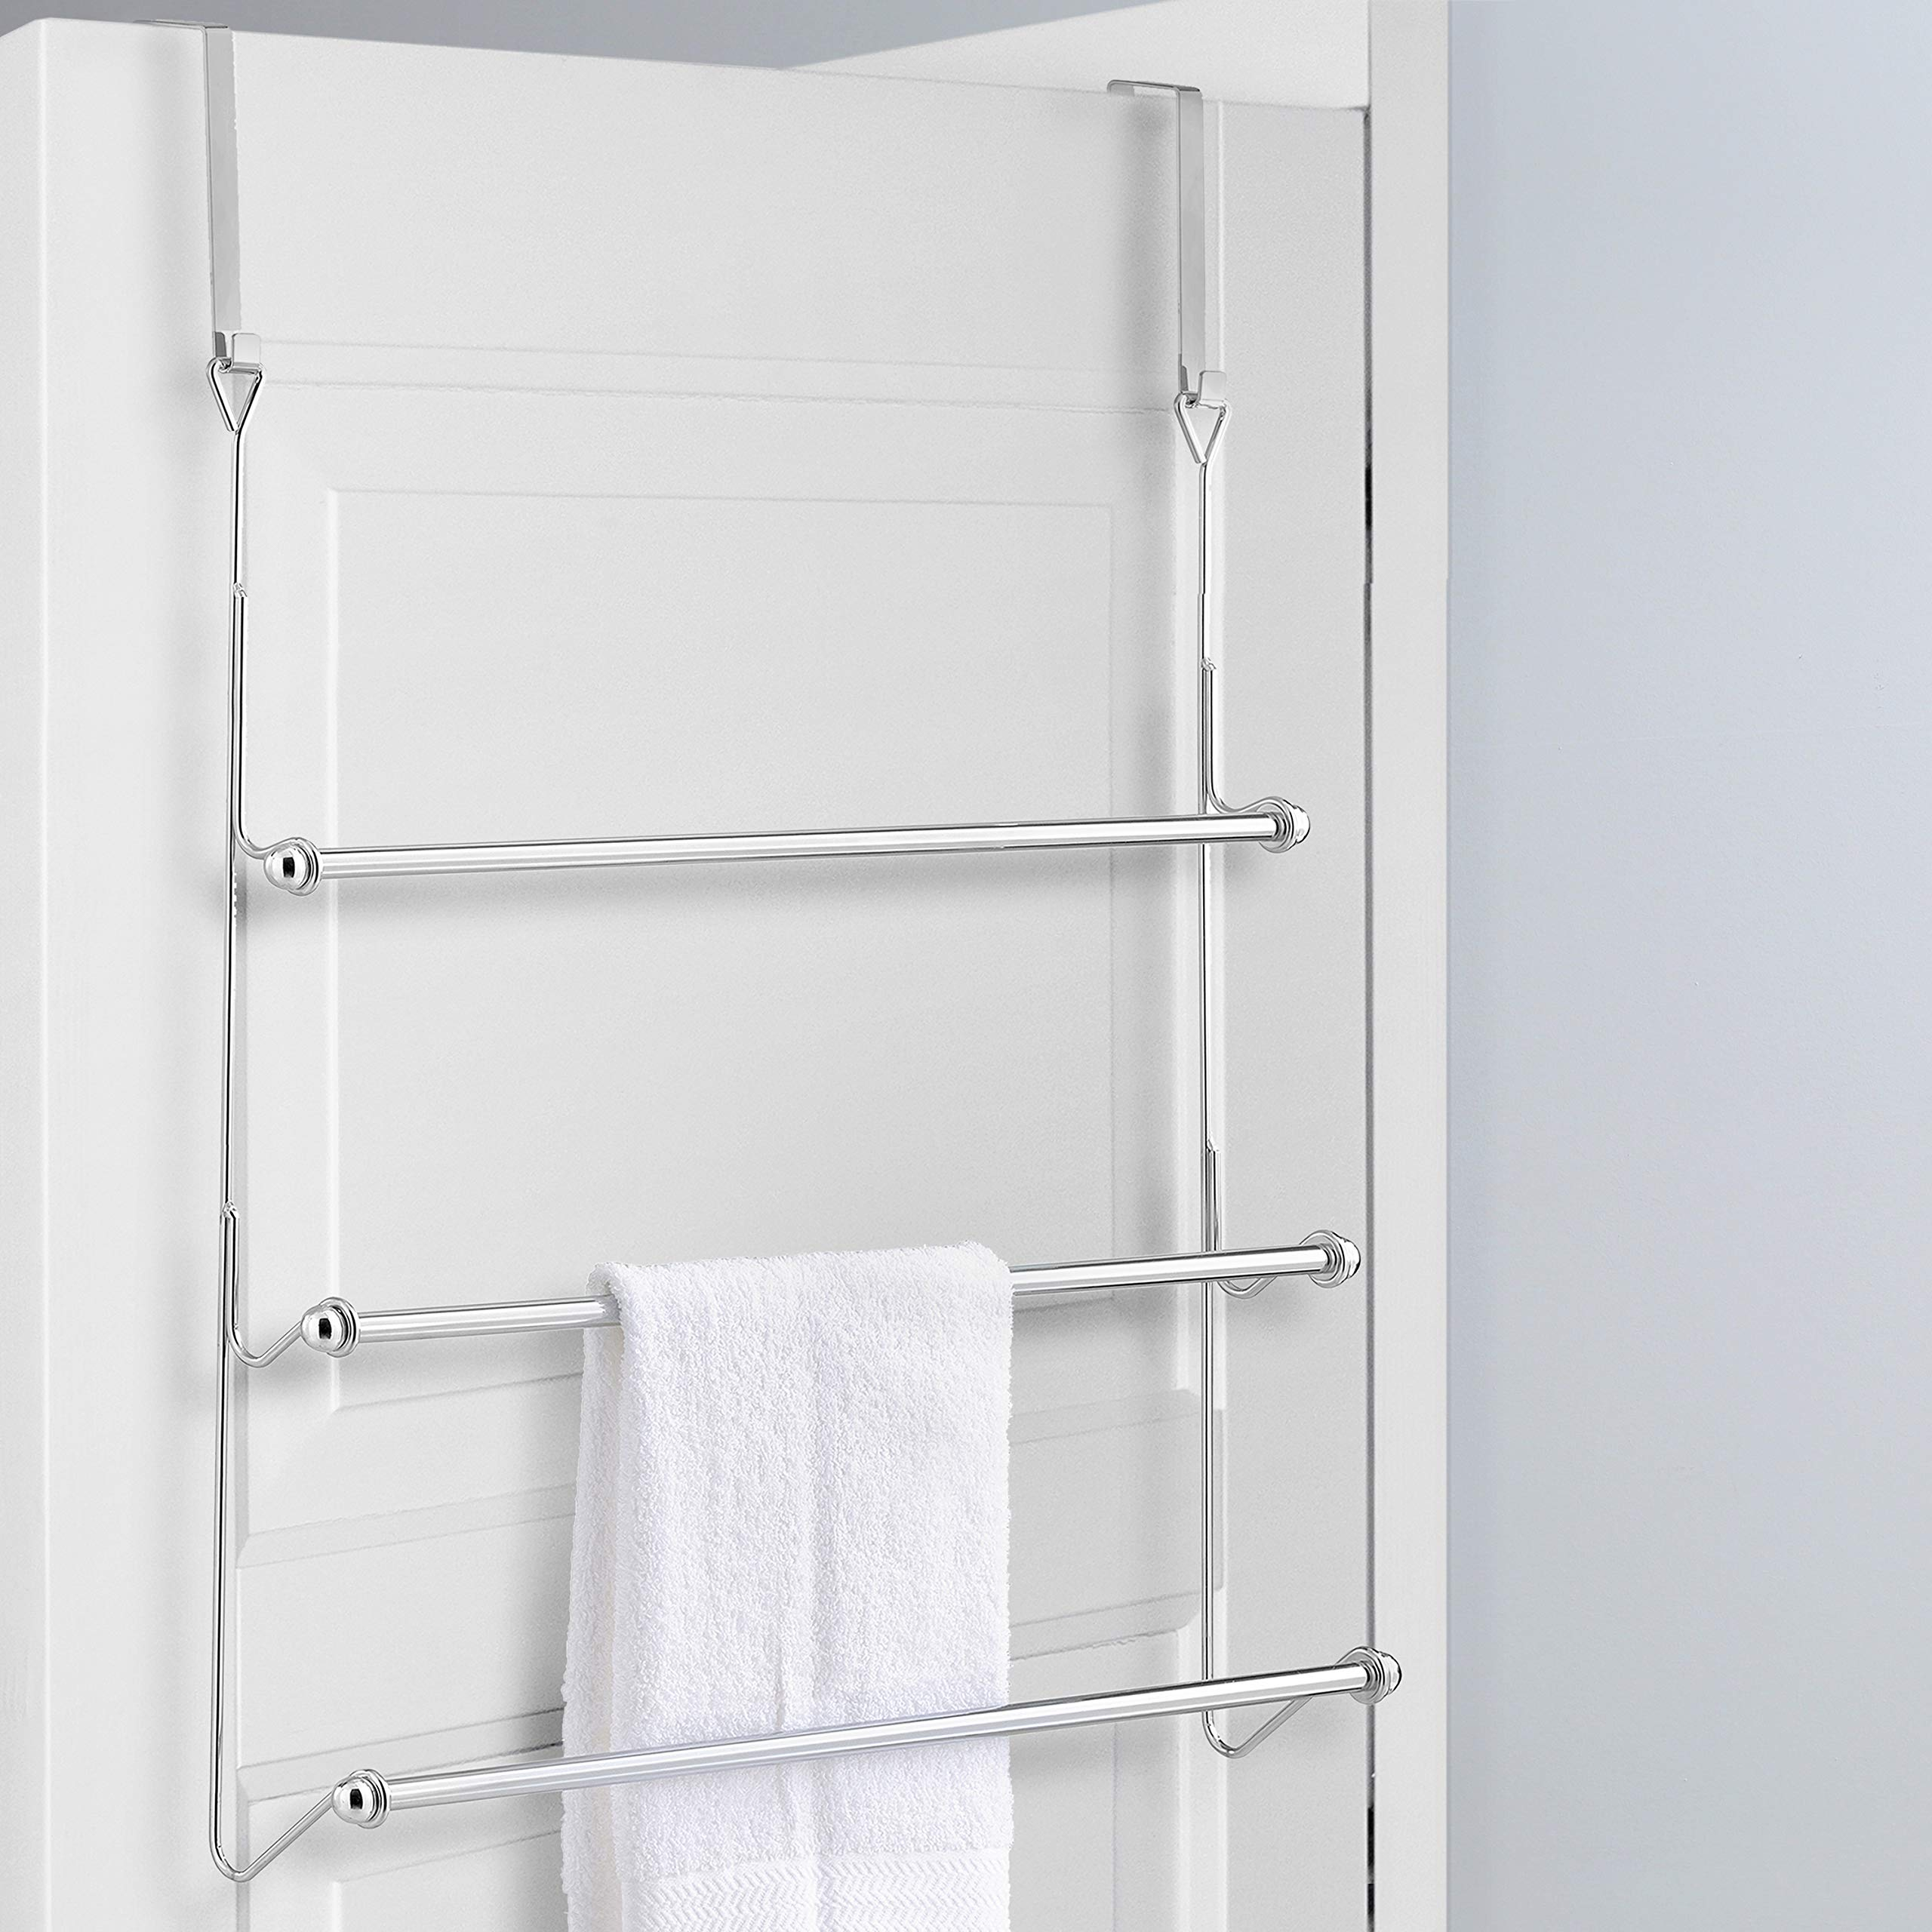 MyGift Over-The-Door 3 Tier Bathroom Towel Bar Rack with Chrome-Plated Finish by MyGift